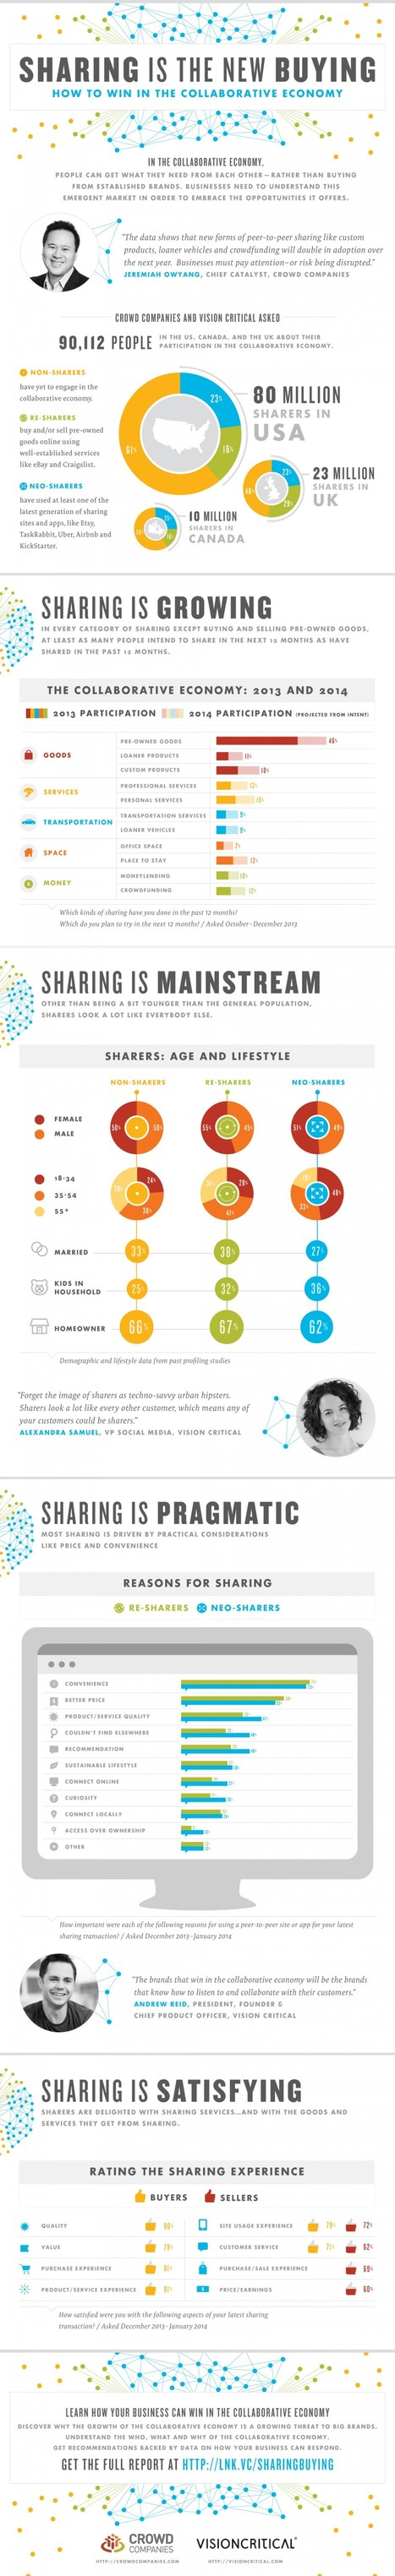 Winning In The Collaborative Economy (Infographic) | MarketingHits | Scoop.it